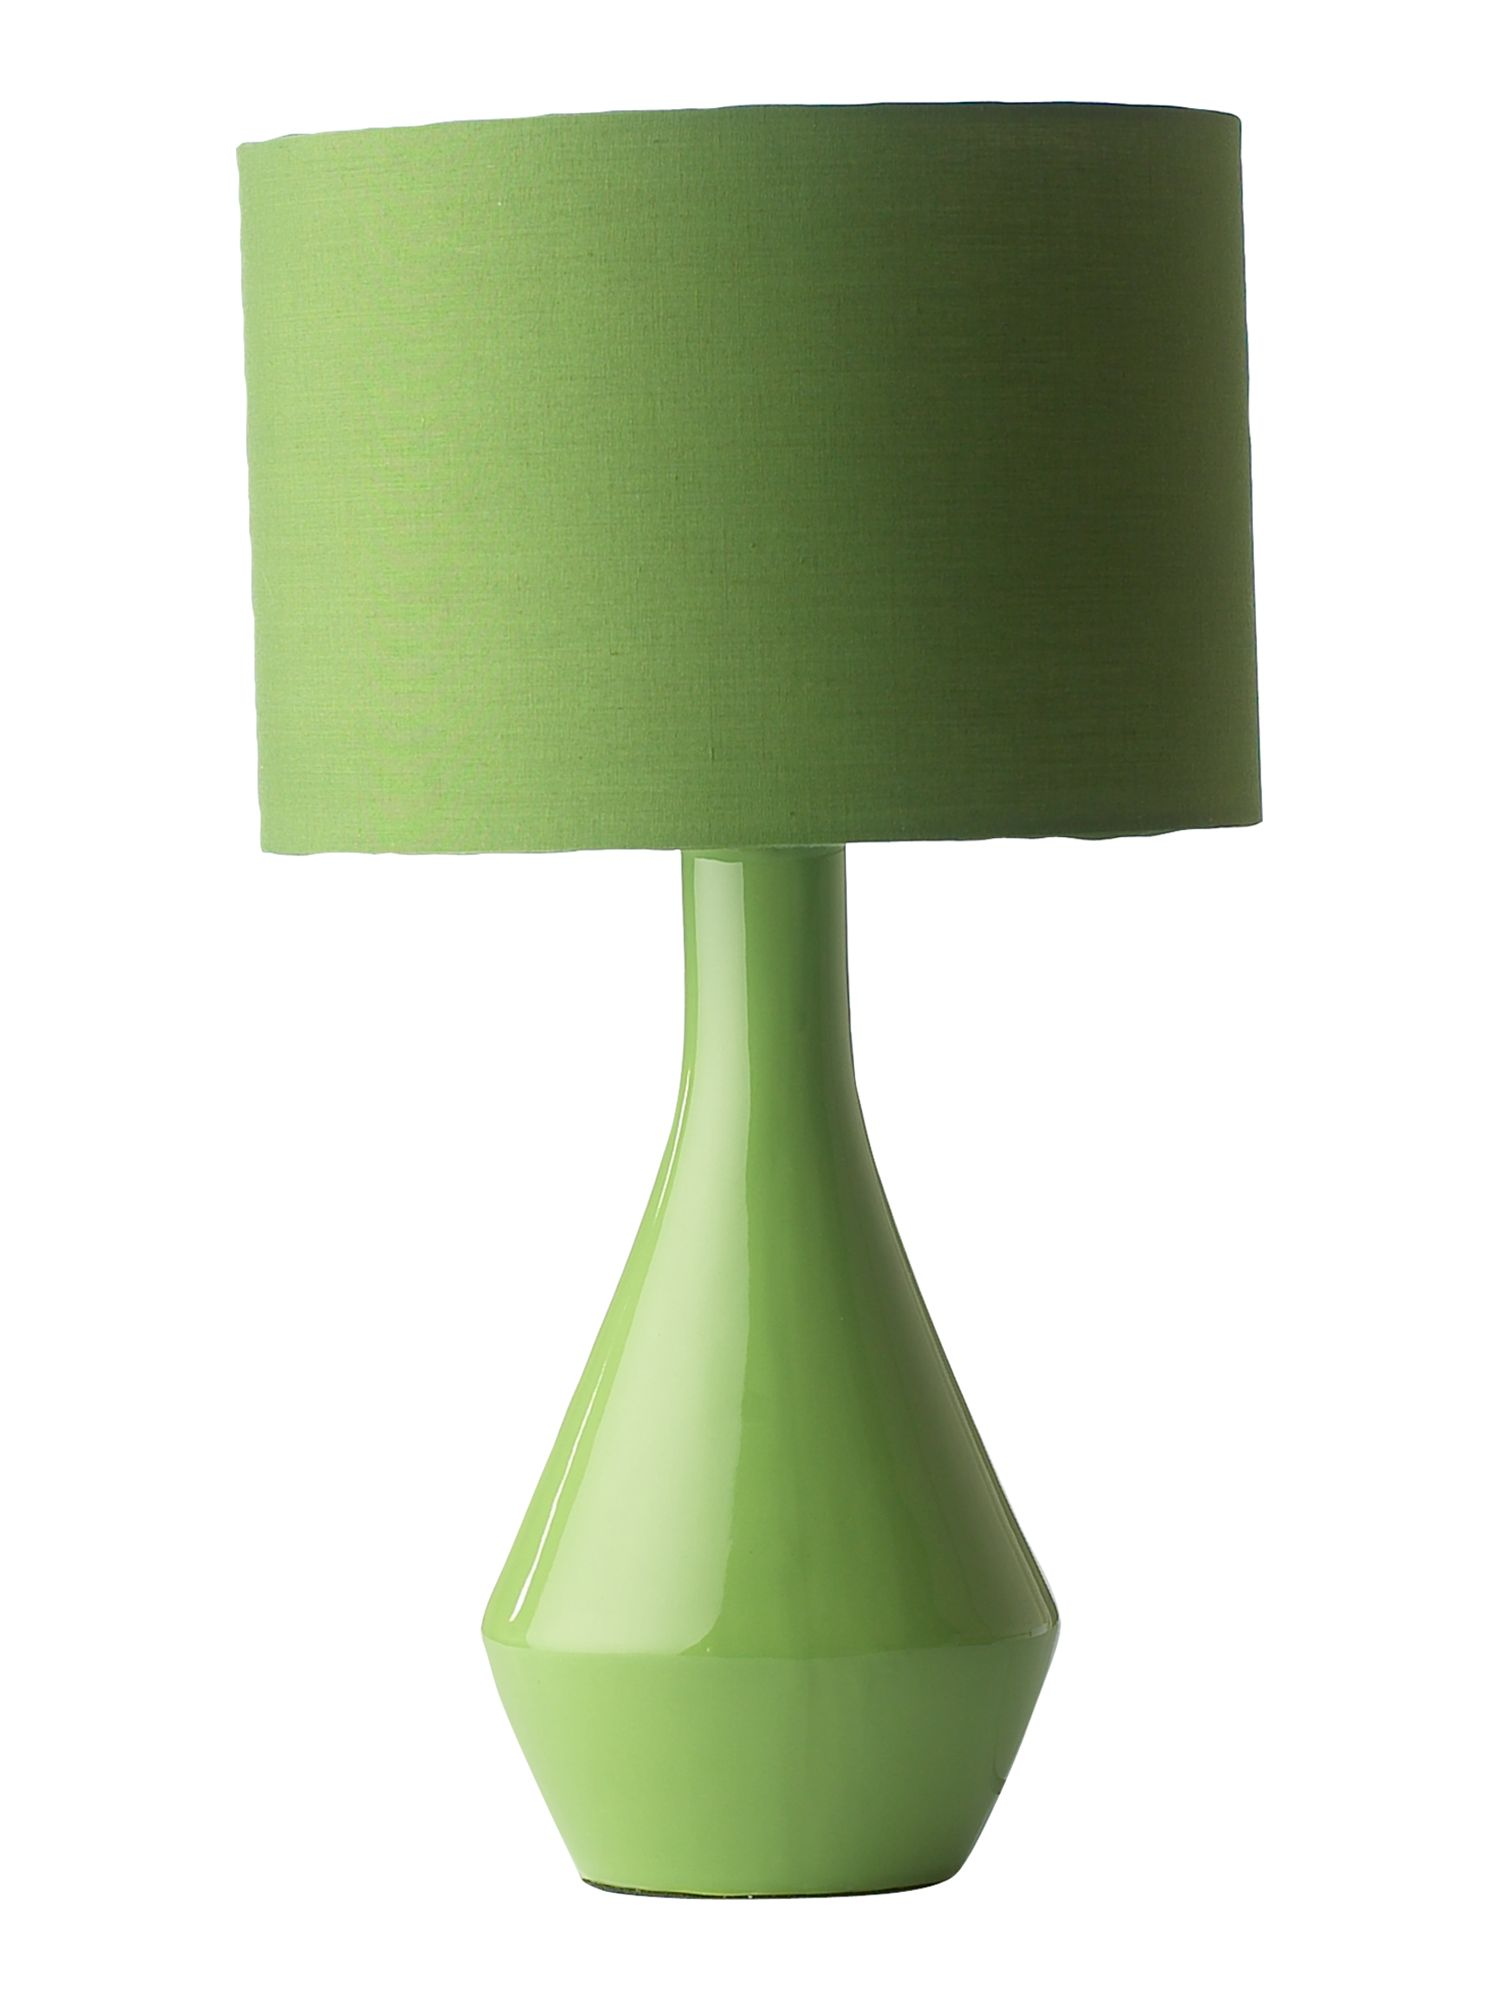 Lola green table lamp